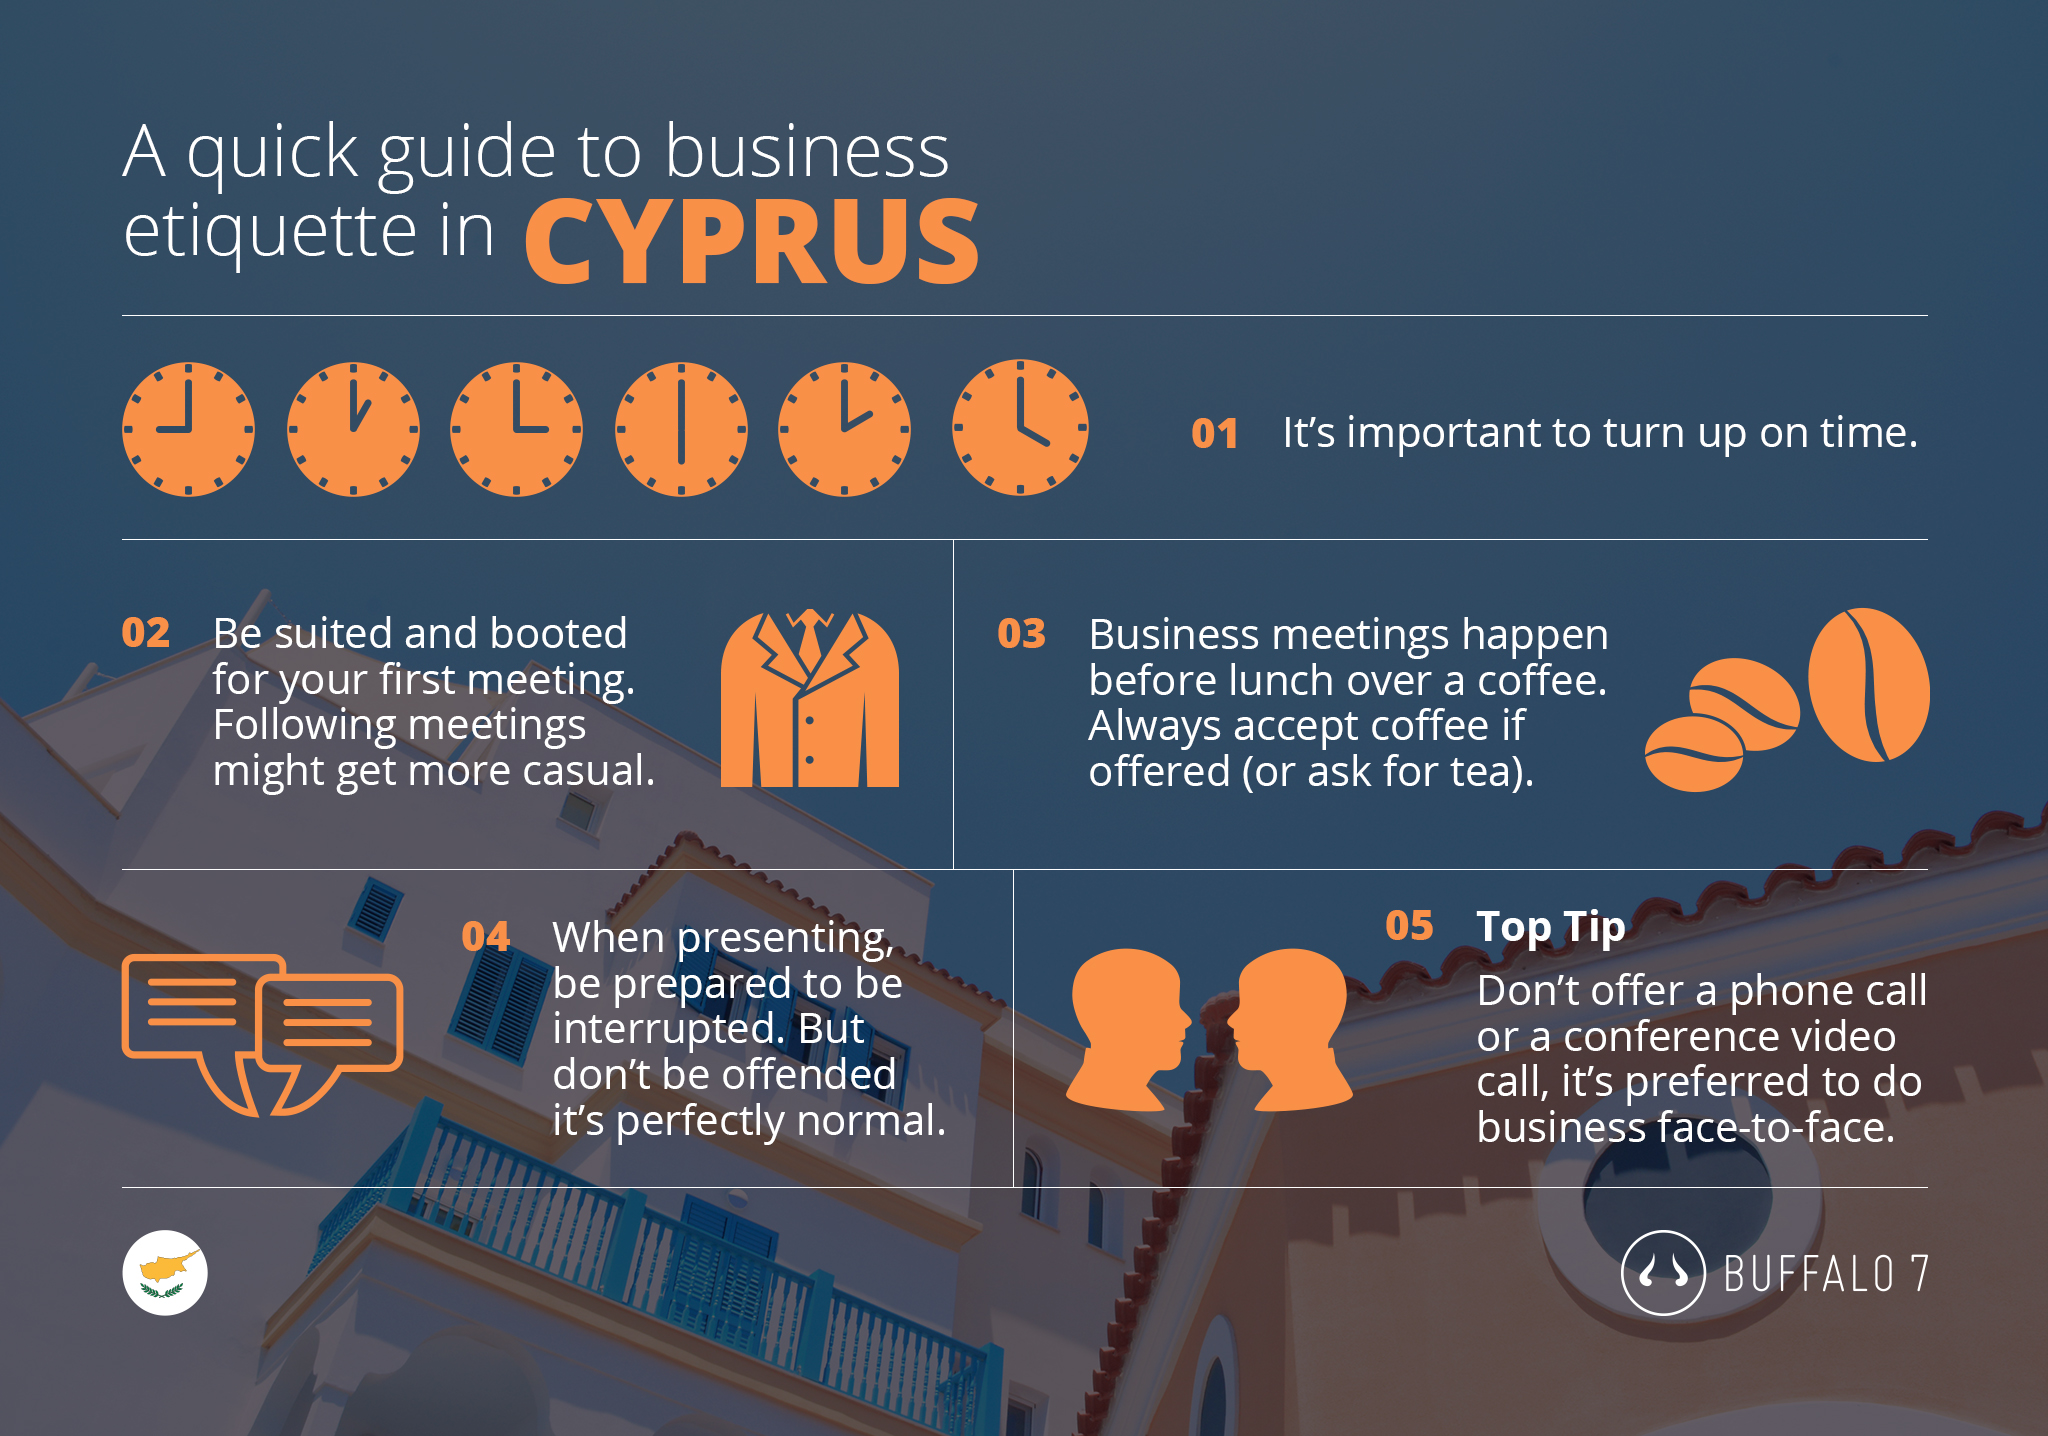 tips on cypriot business etiquette